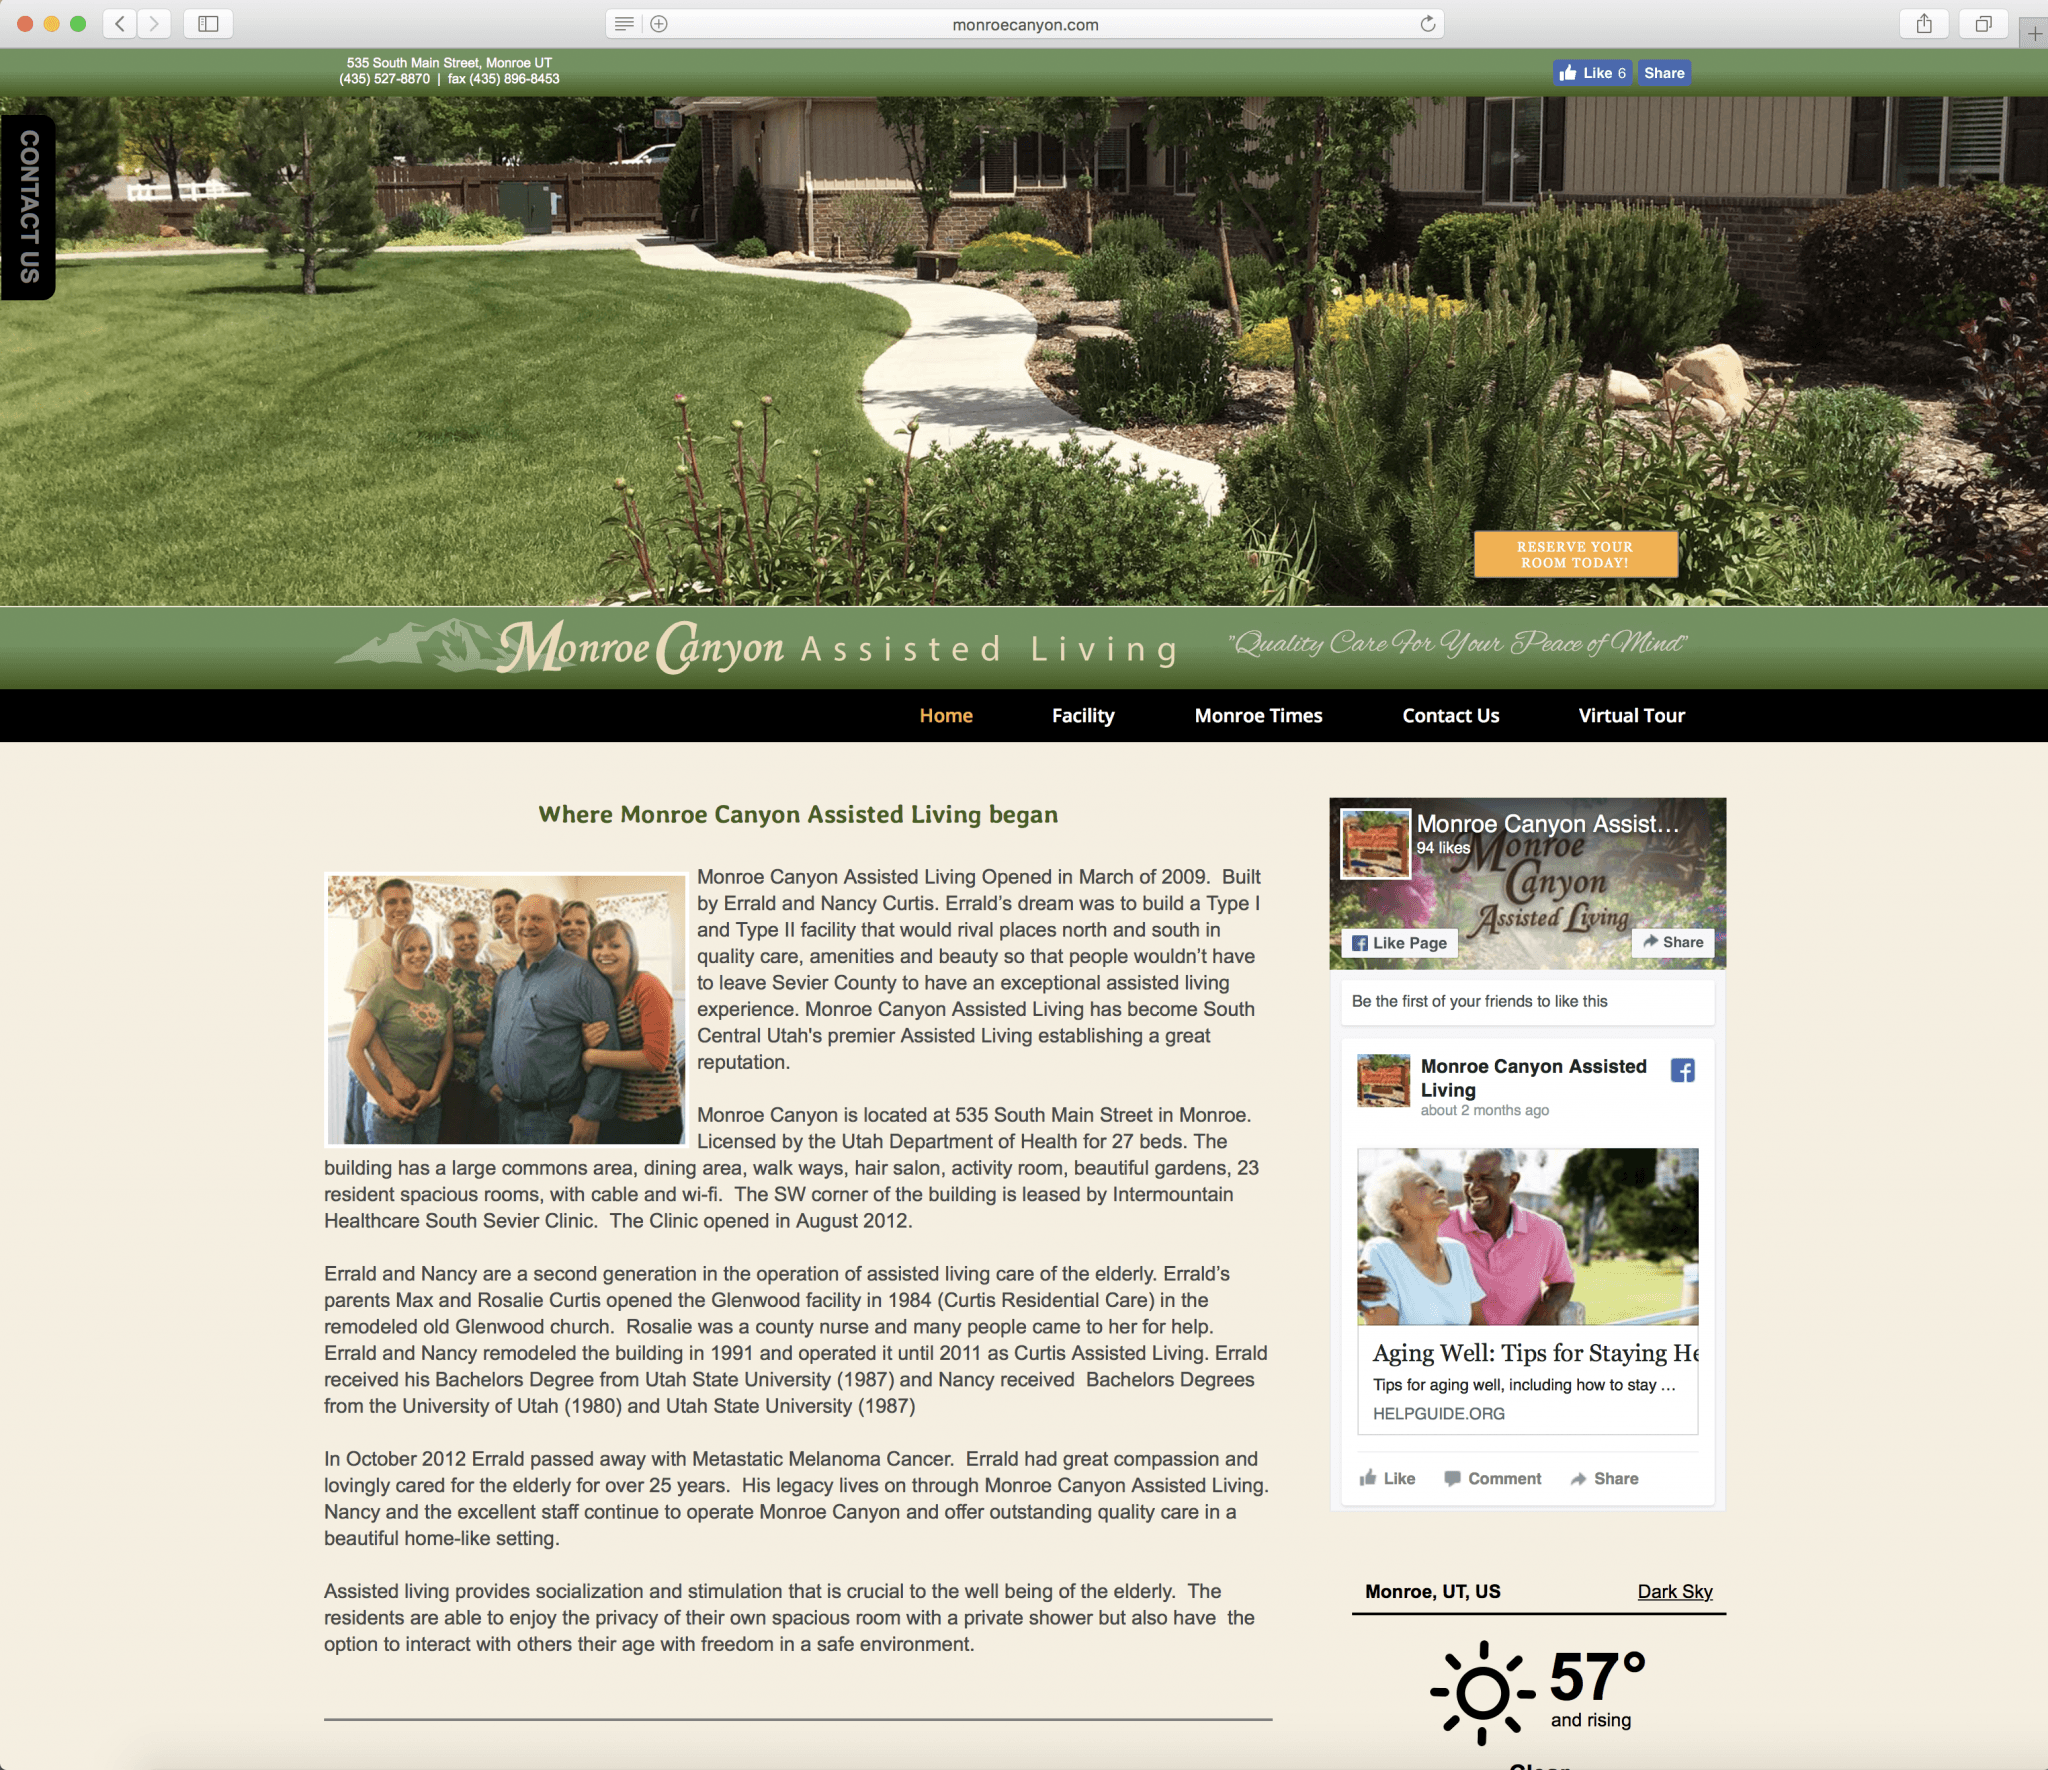 Monroe Canyon Assisted Living